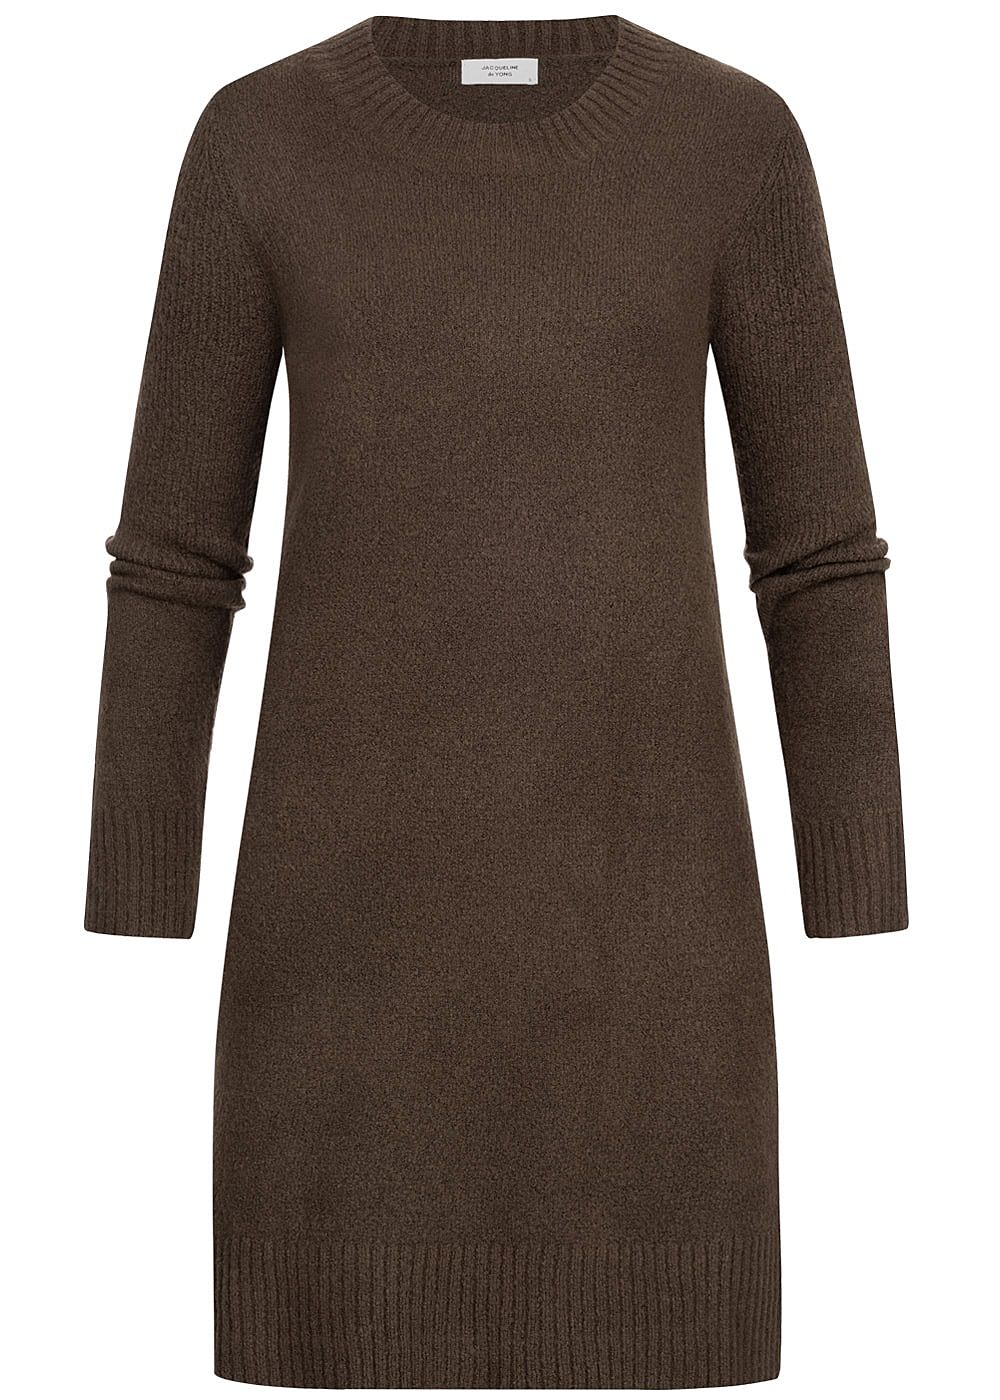 JDY by ONLY Damen Knit Dress NOOS coffee bean braun - Art.-Nr.: 19083569